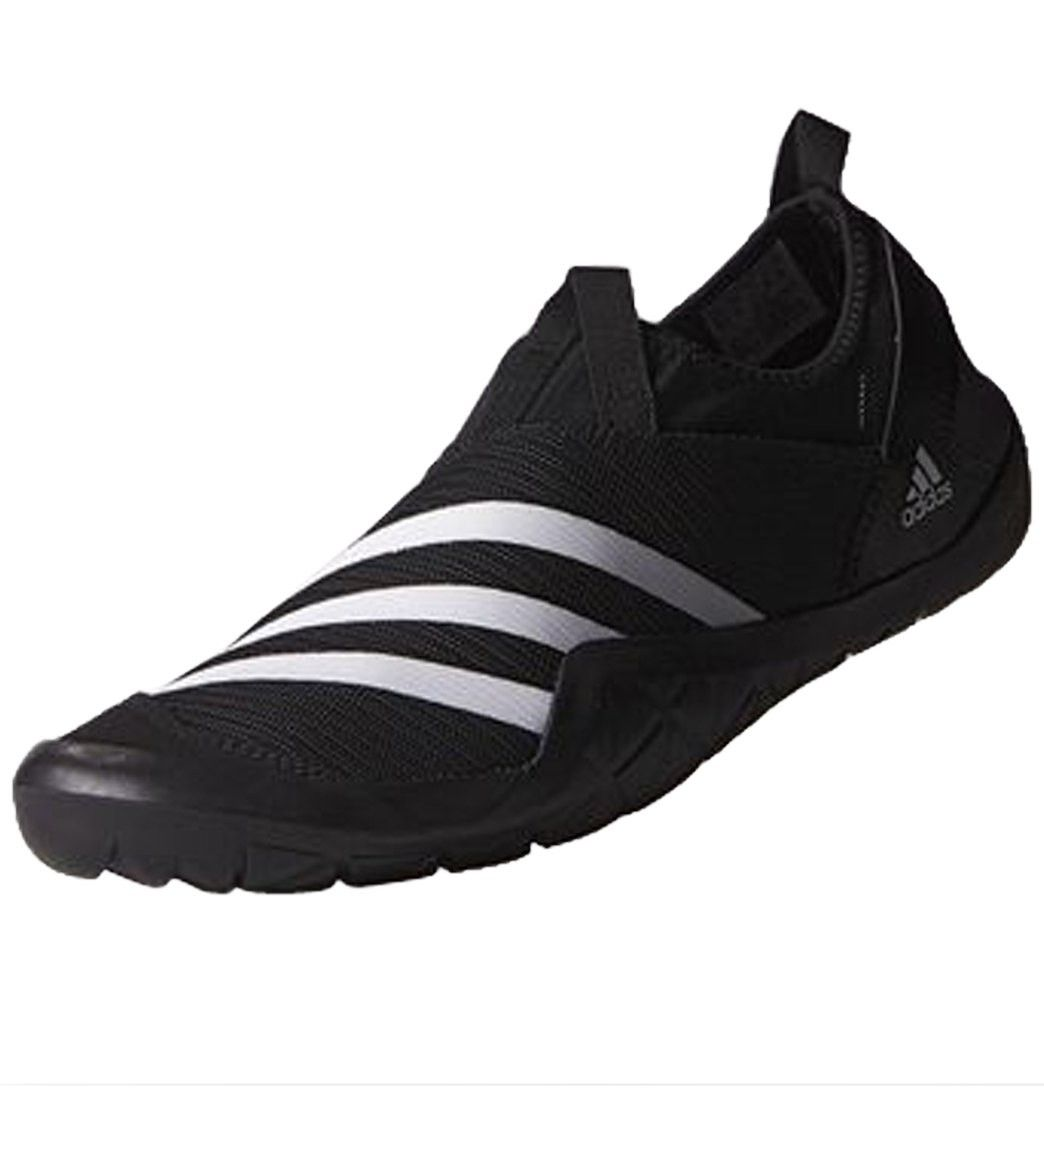 Men's Climacool Jawpaw Slip-On Water Shoe   Water shoes, Shoes ...